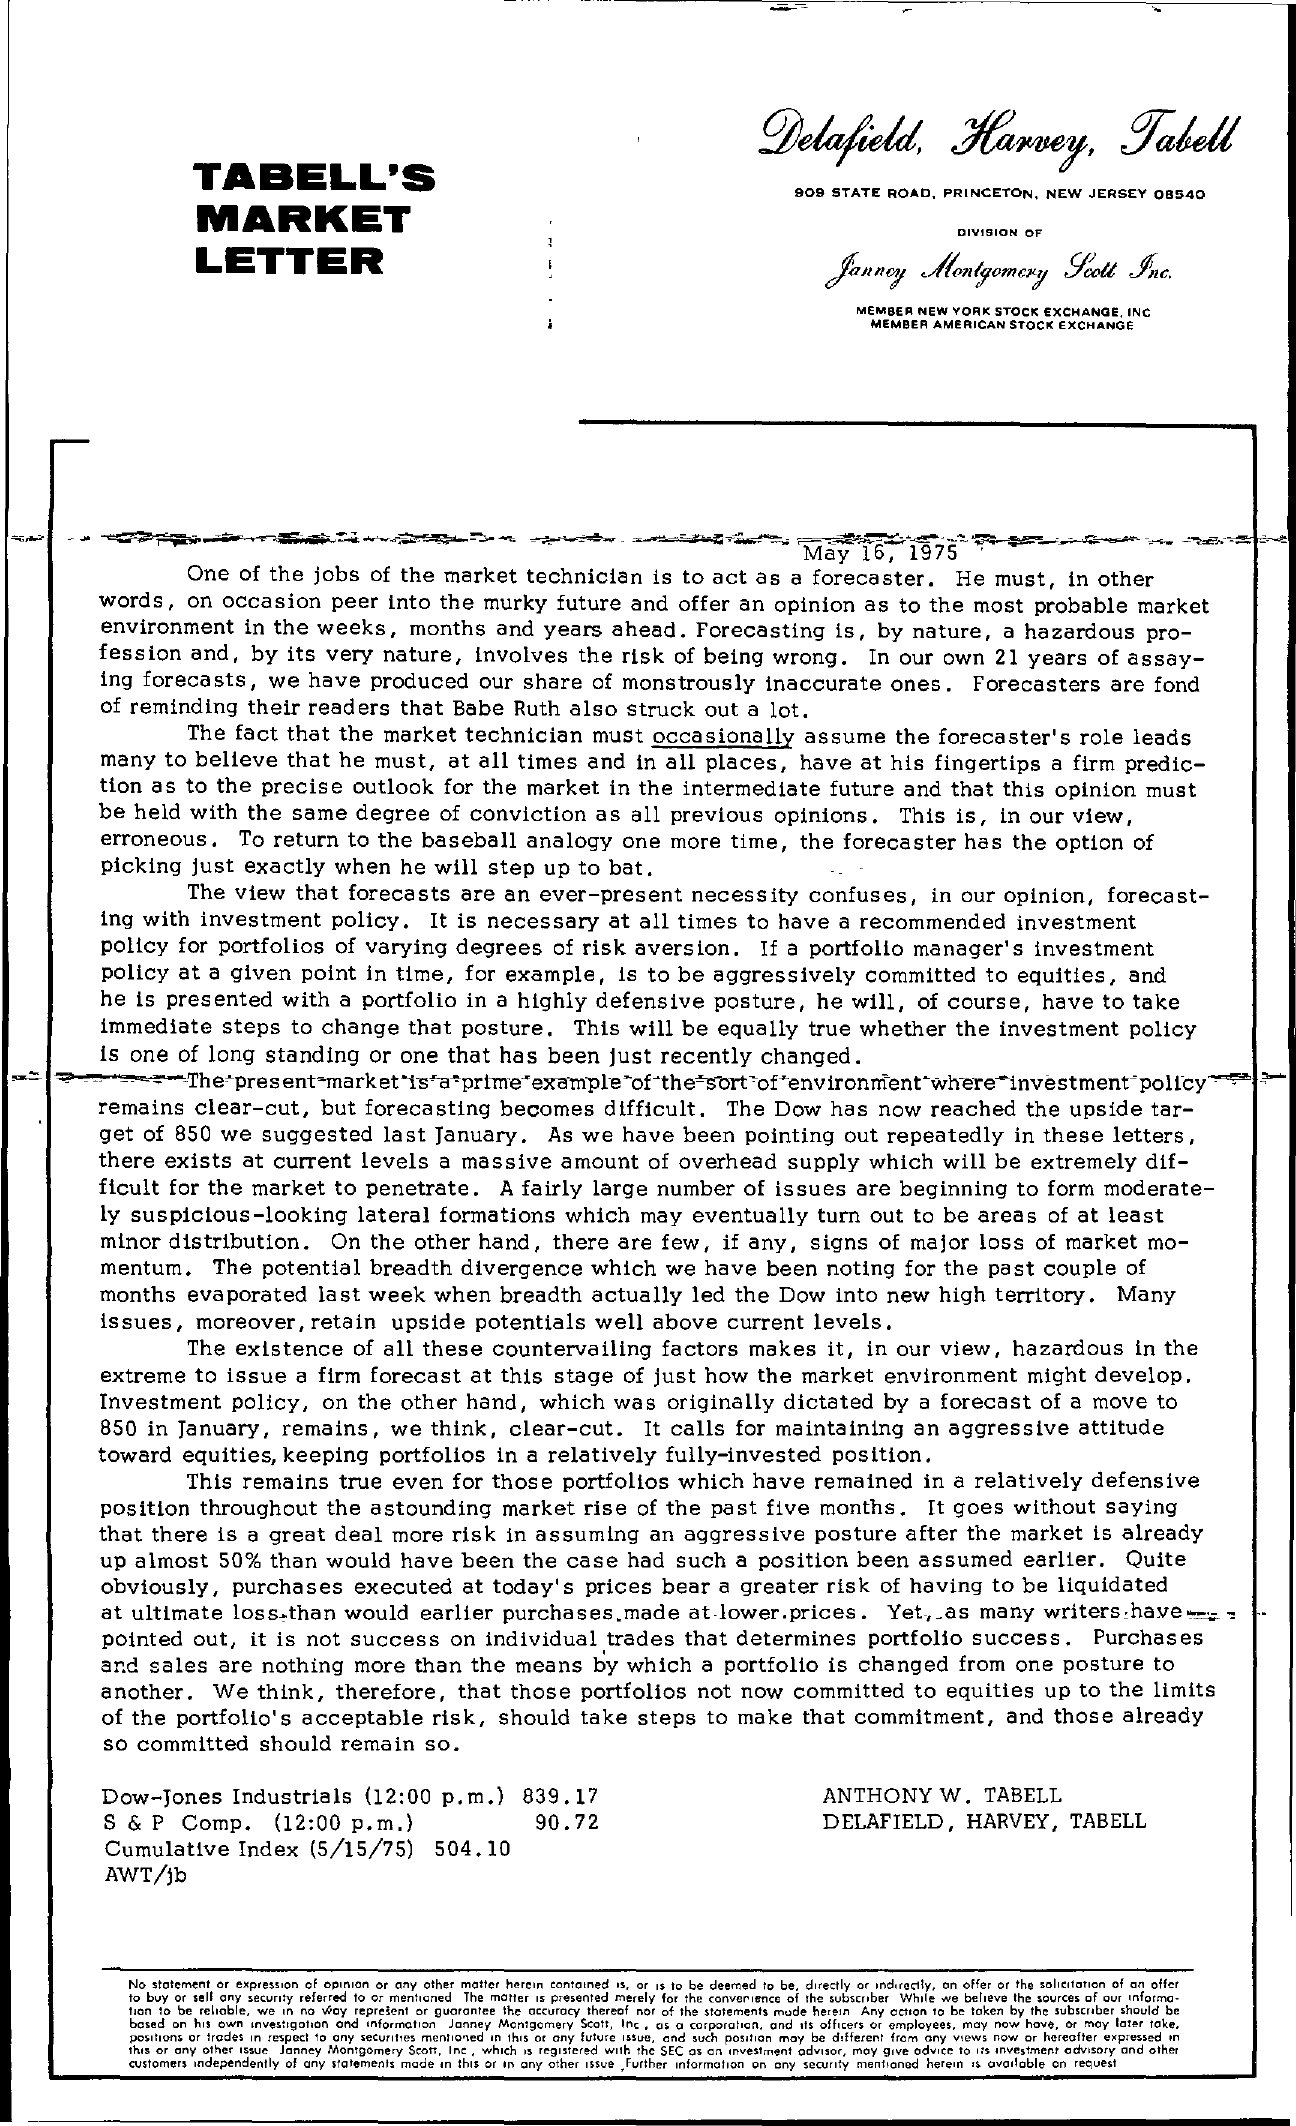 Tabell's Market Letter - May 16, 1975